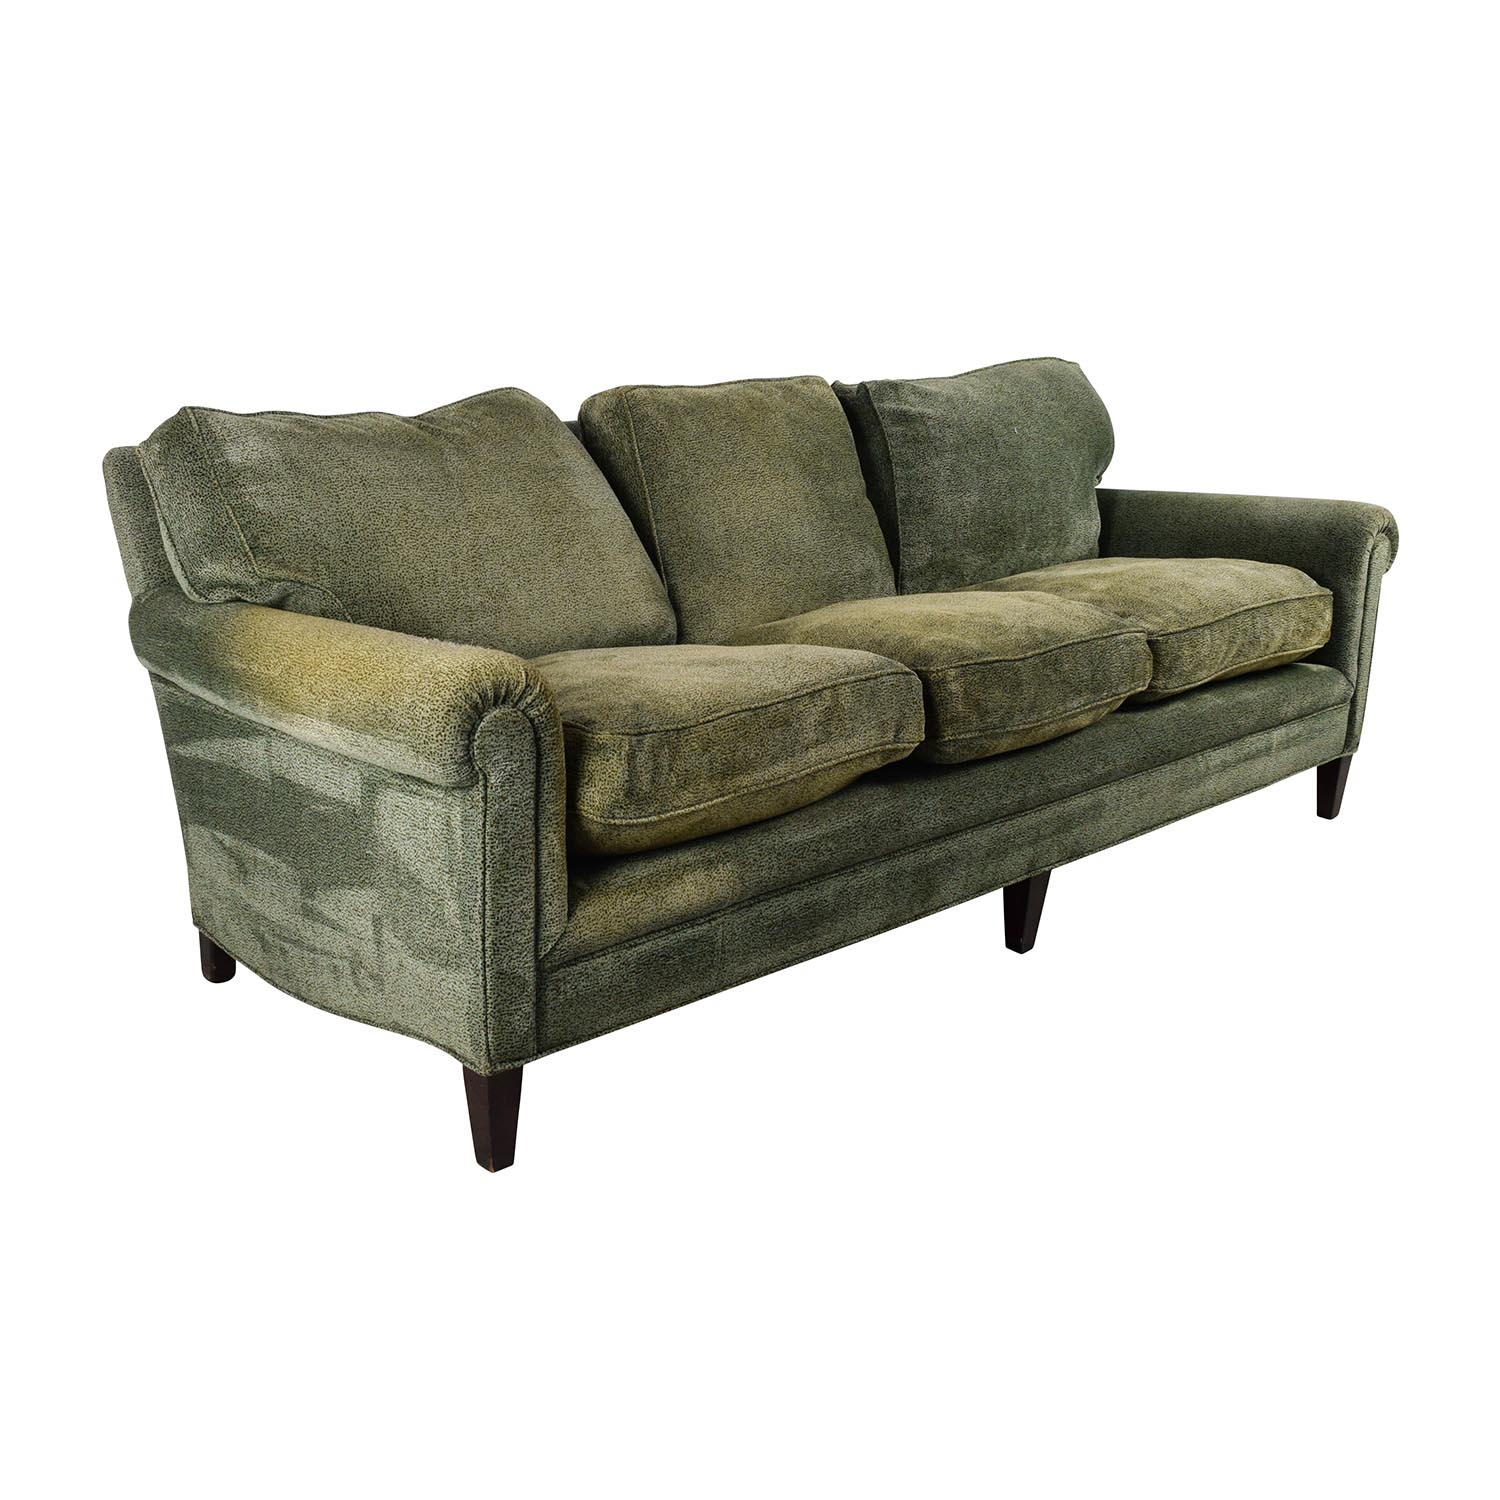 feather filled sofas second hand cotton throws for george smith sofa sale home the honoroak